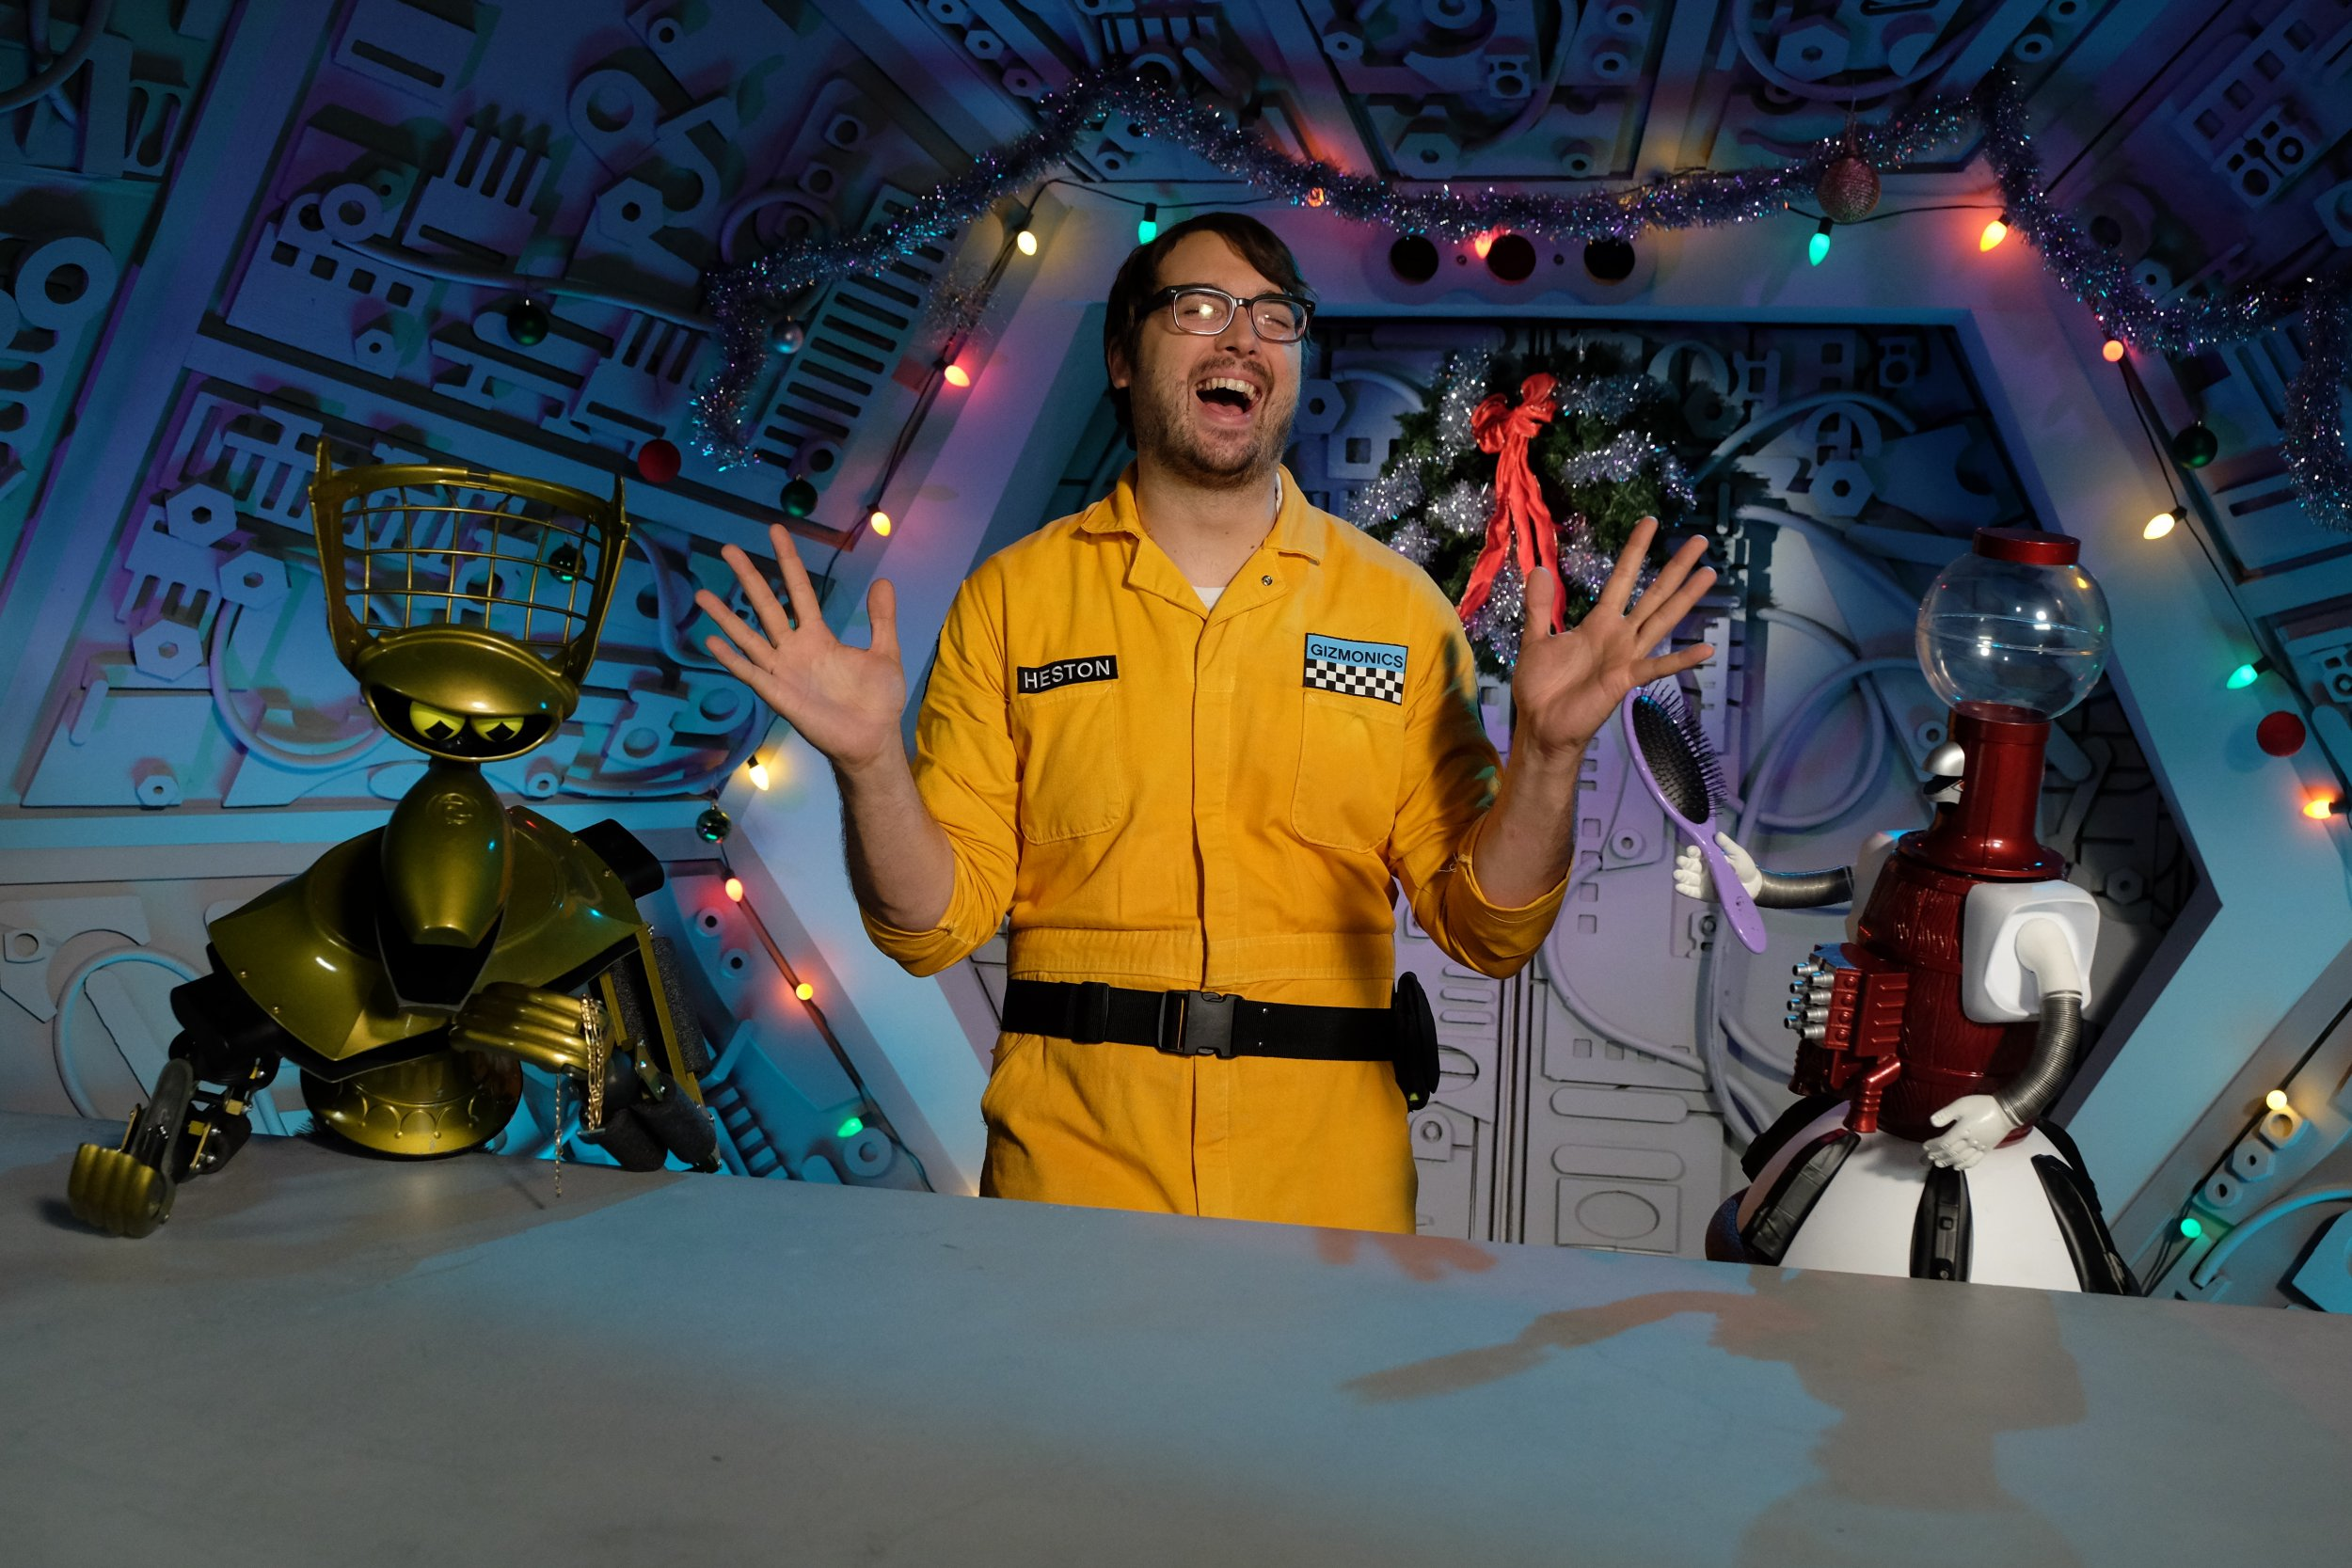 mystery-science-theater-3000-the-return-mst3k-release-date